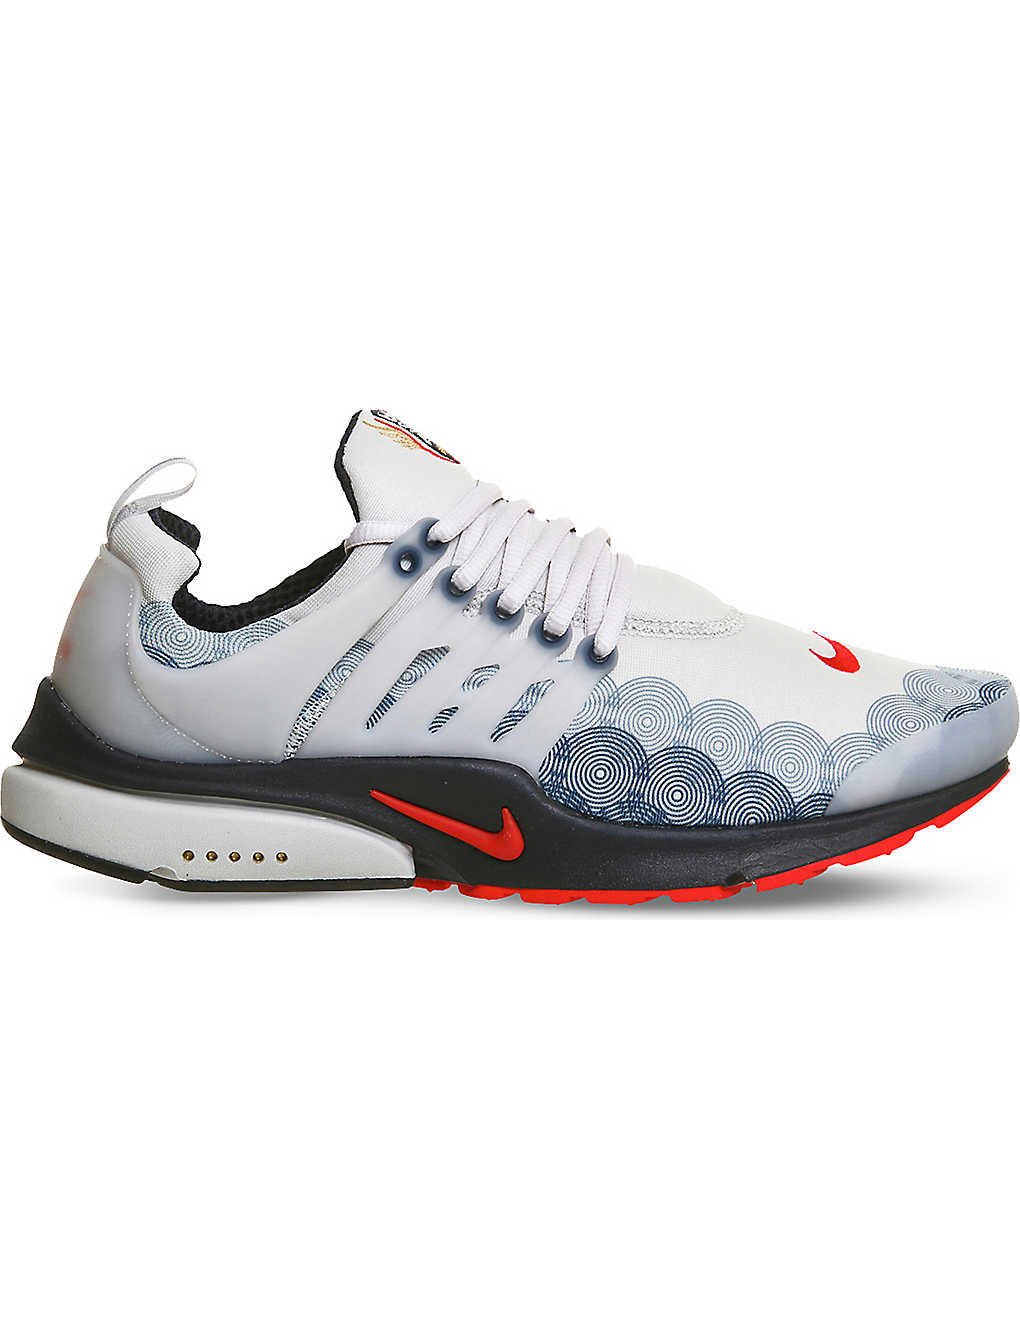 reputable site 309ae 1a877 NIKE - Air presto fs trainers | Selfridges.com